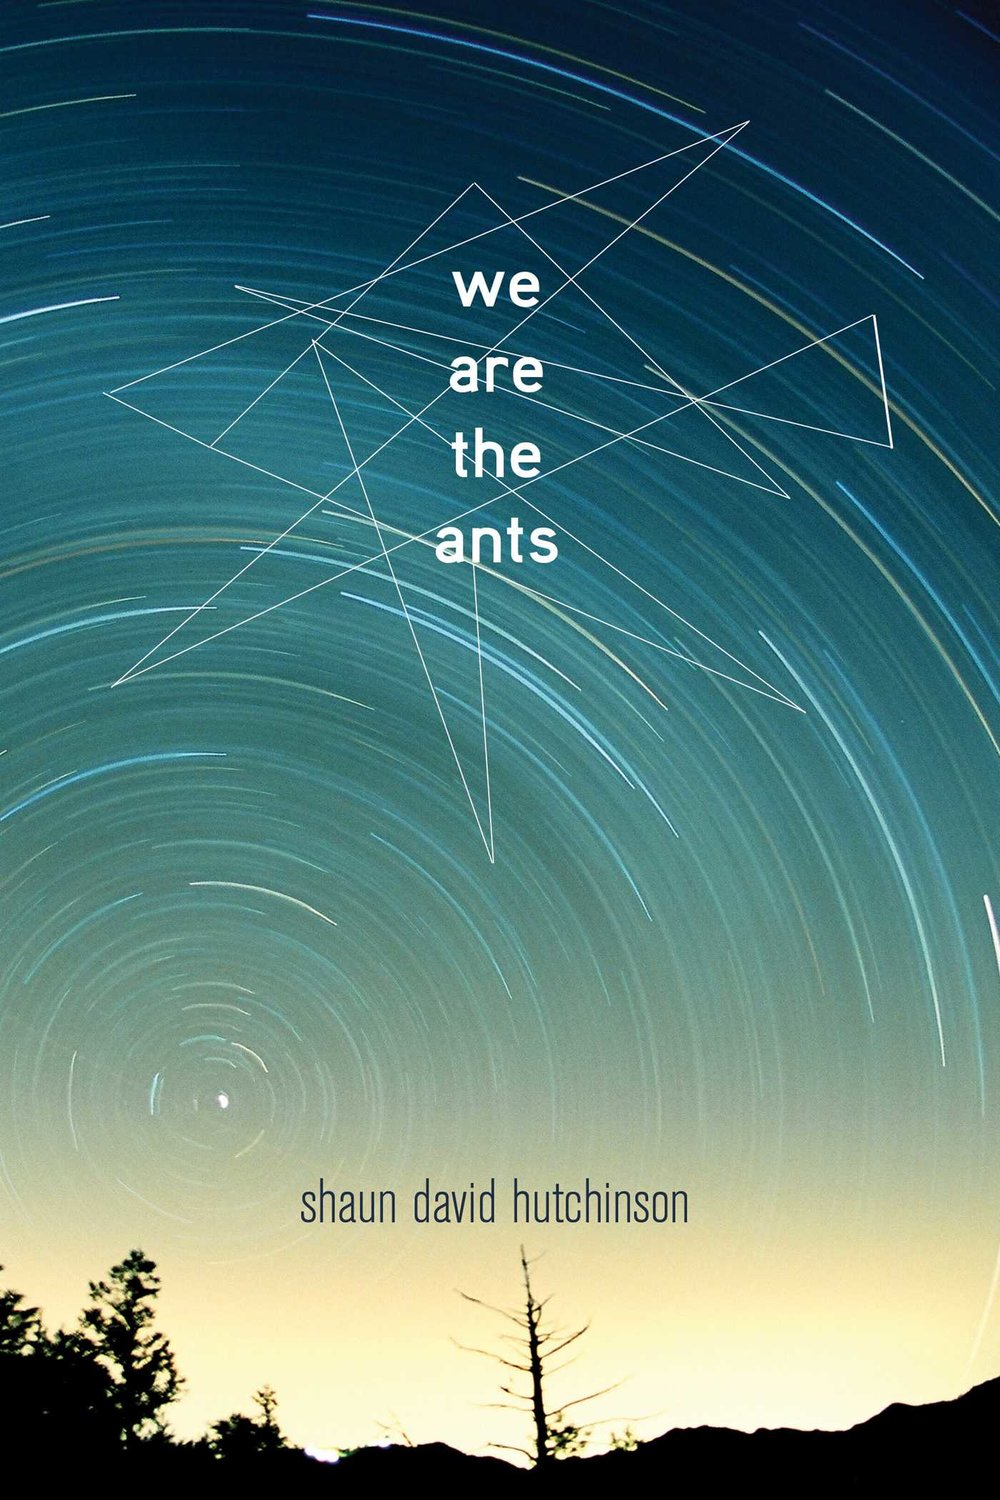 shaun-david-hutchinson-we-are-the-ants.jpg